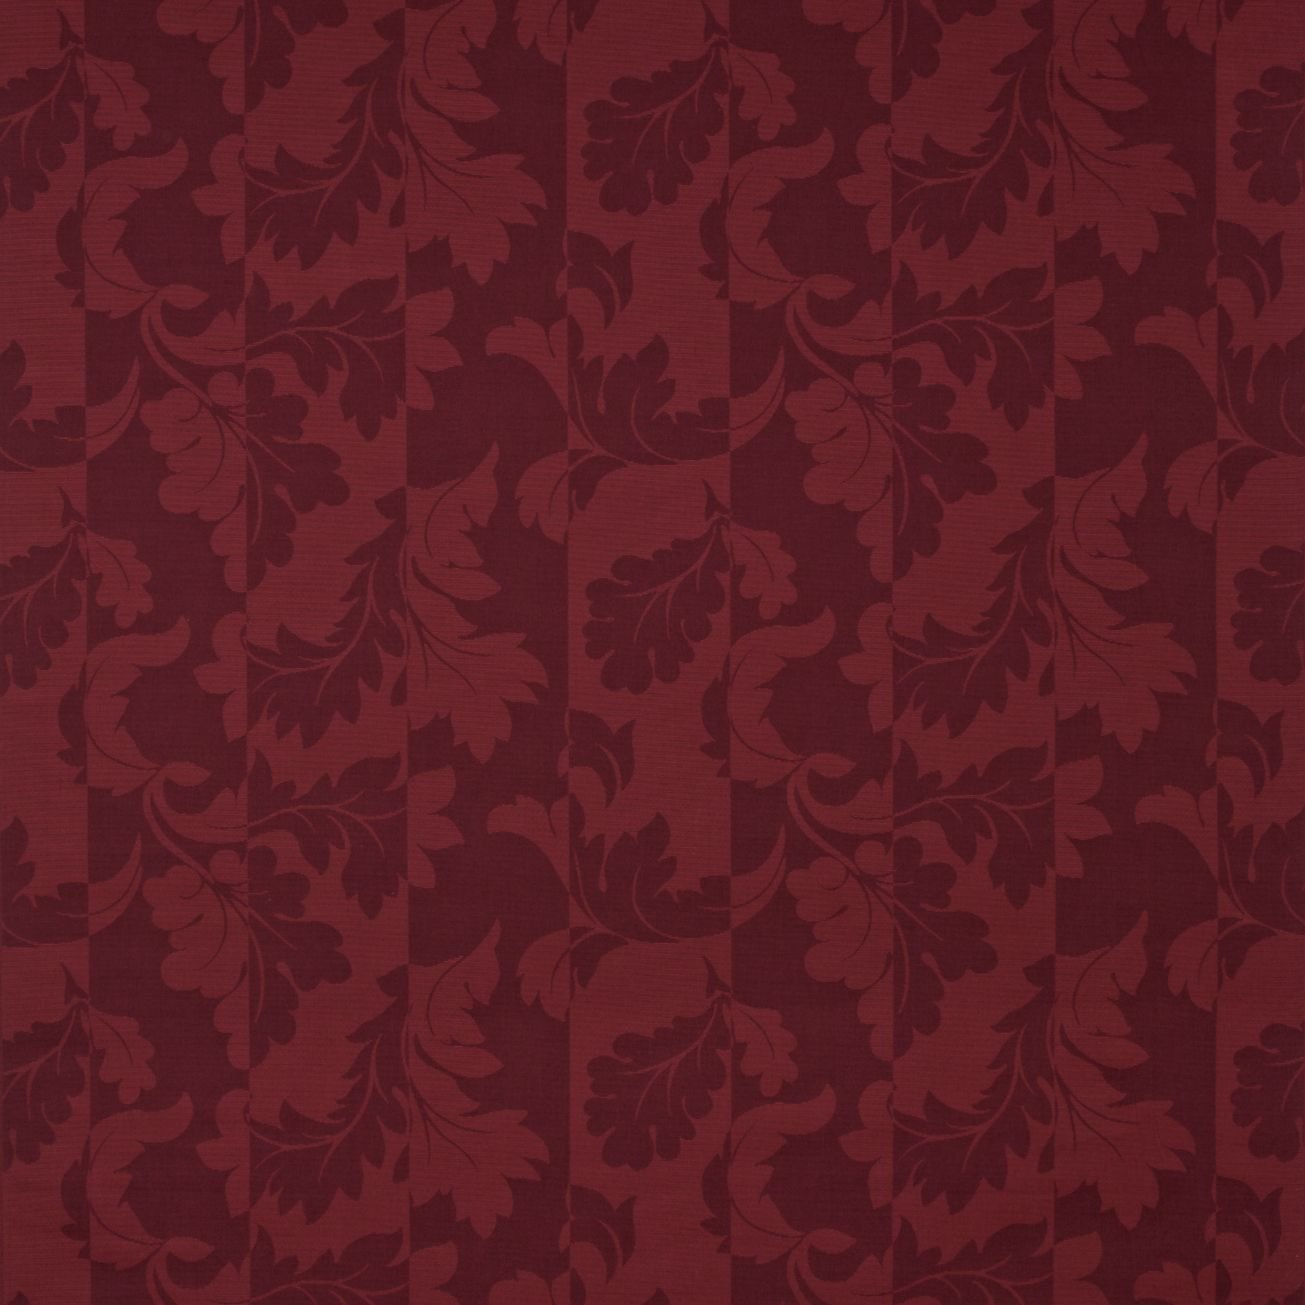 Harrow Fabric Marlborough Fabrics Collection Sanderson Fabric 1305x1305